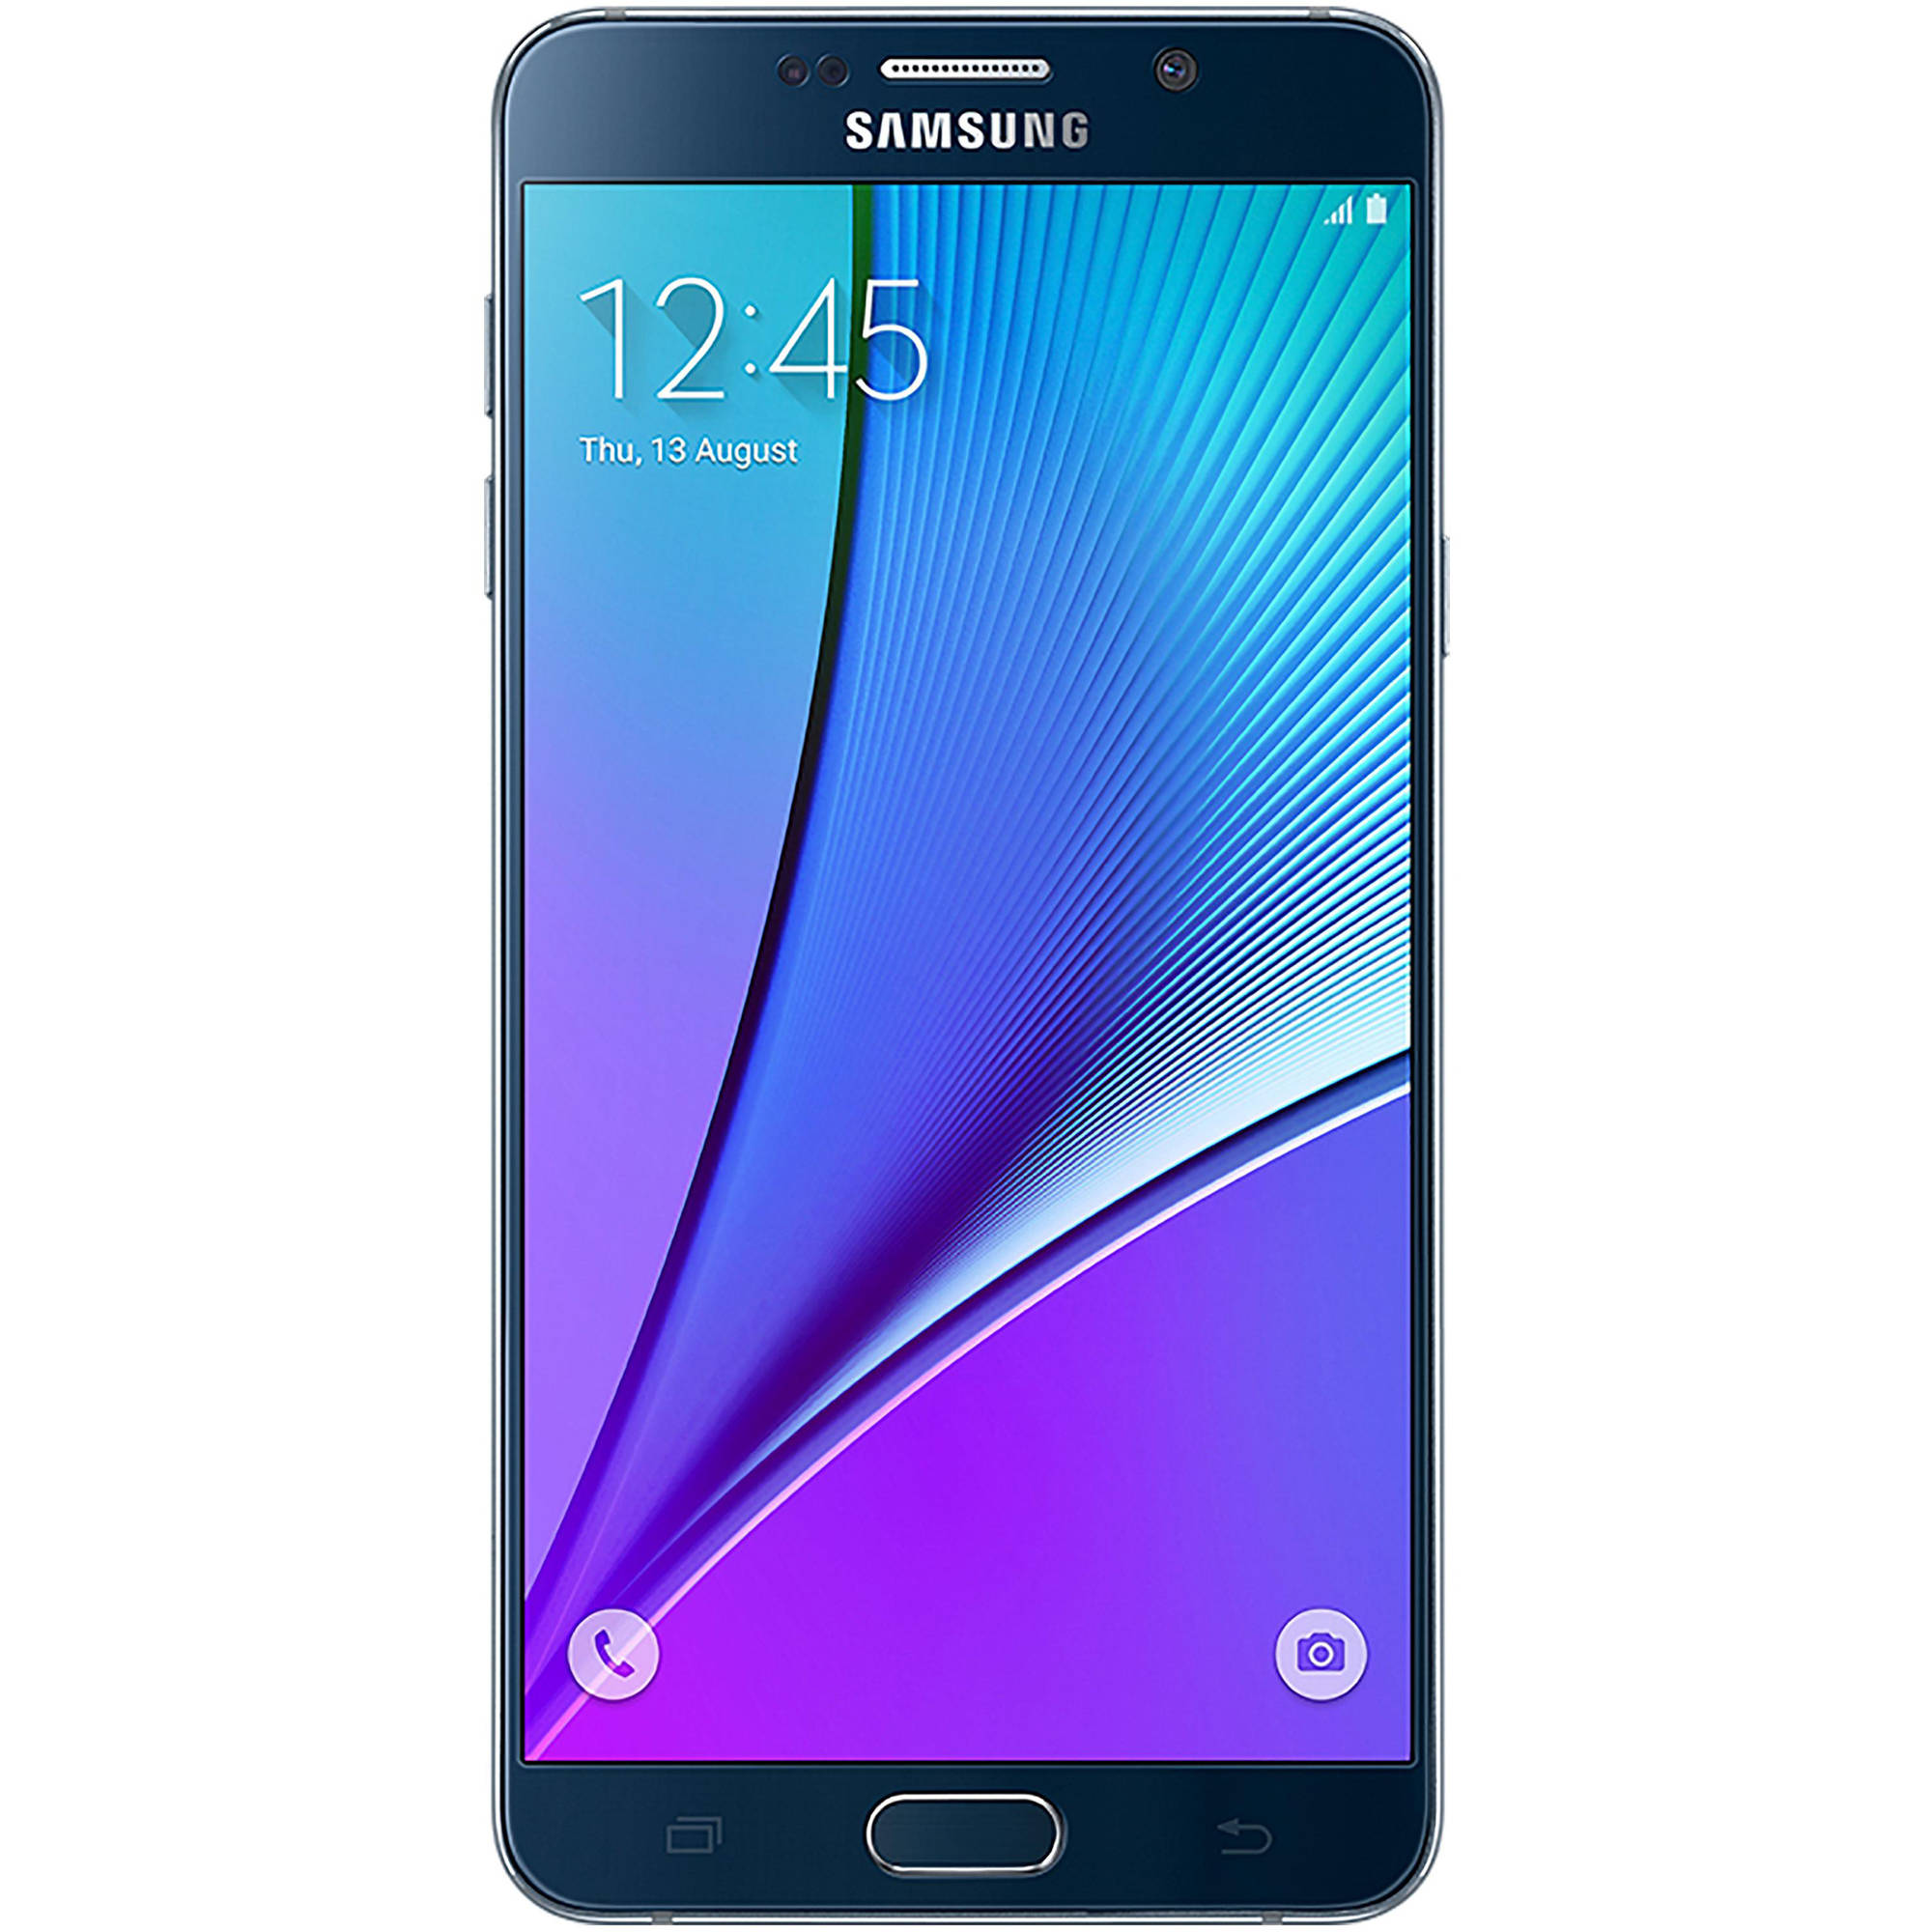 Samsung Galaxy Note 5 N920G 32GB GSM LTE Octa-Core Smartphone (Unlocked)